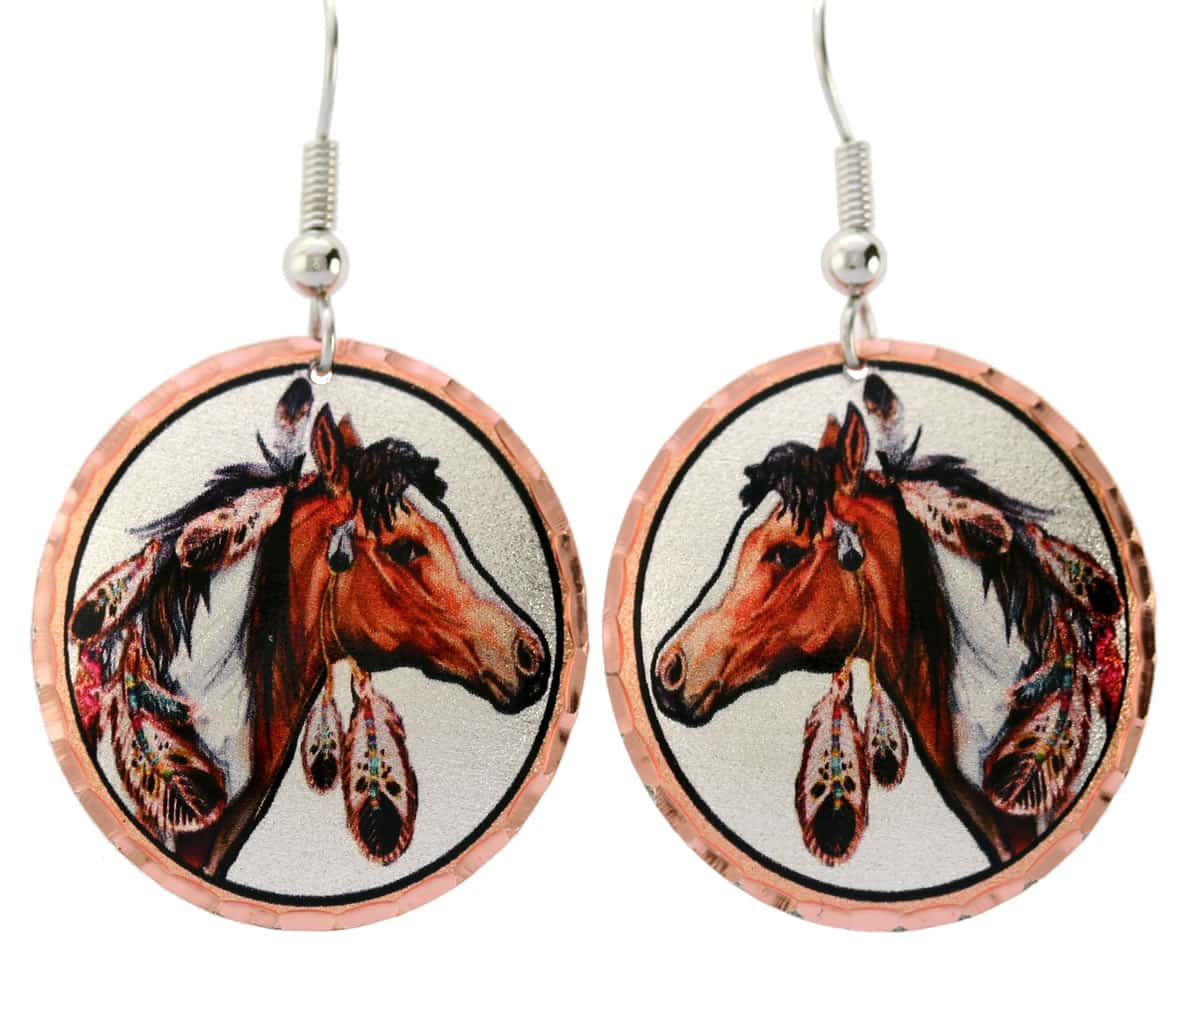 Round Native Indian horse earrings designed by Lynn Bean